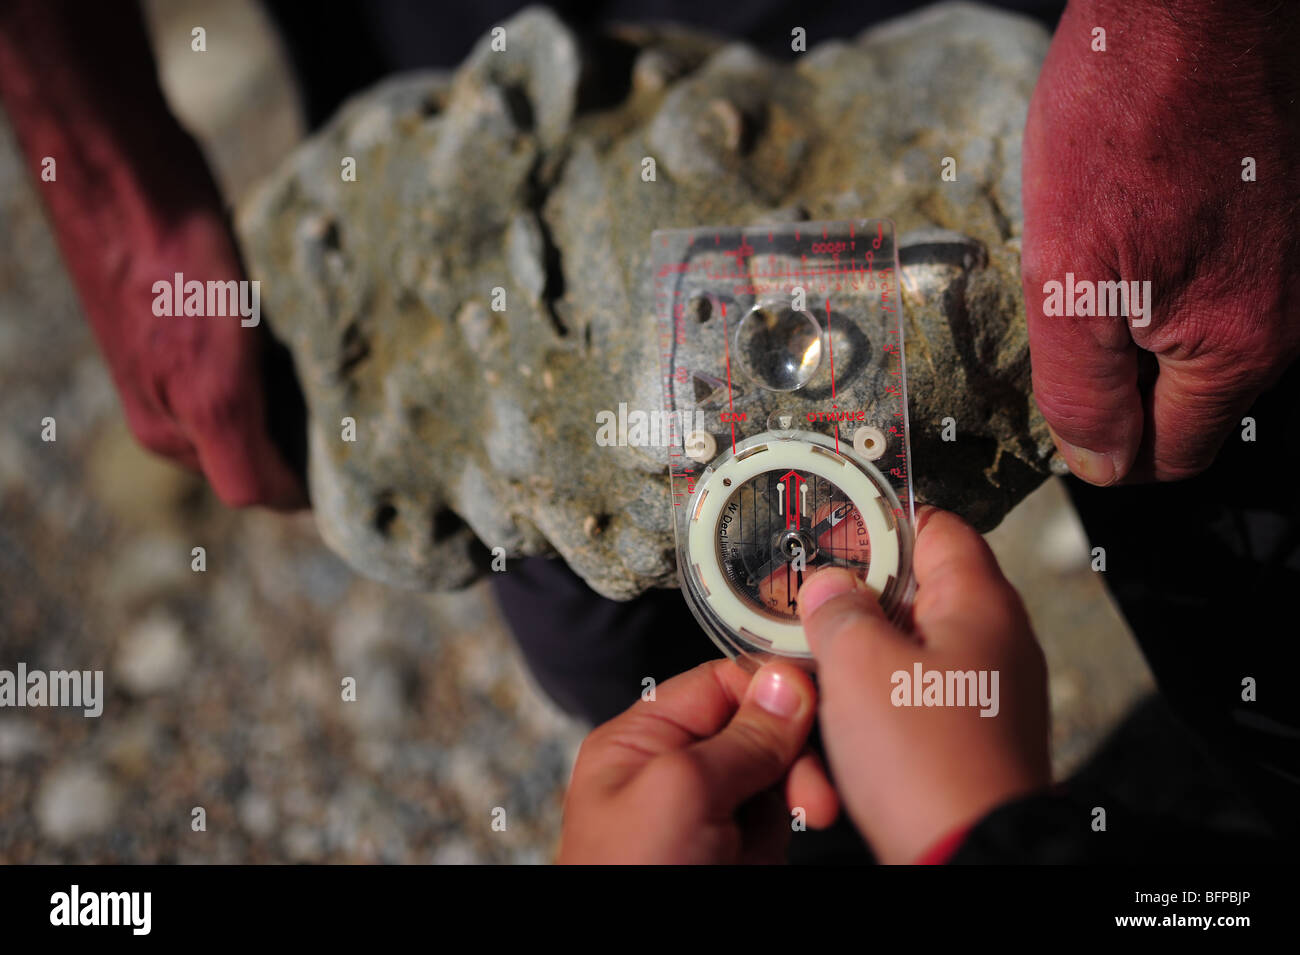 A child learning how to use a magnifying lens while looking for fossils at Lulworth Cove, Dorset, UK - Stock Image